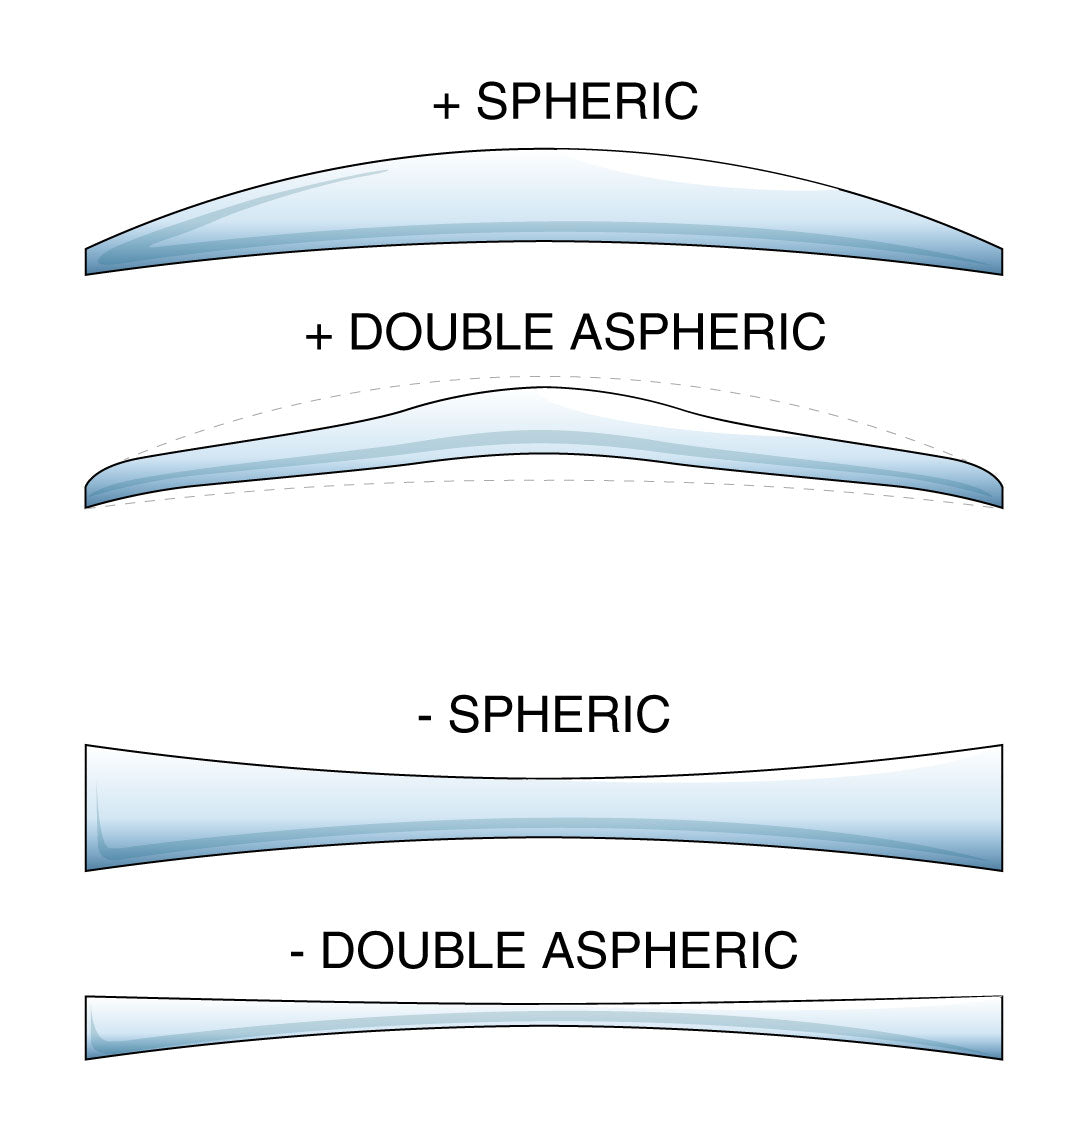 Illustration comparison of spheric and double aspheric spectacle lenses